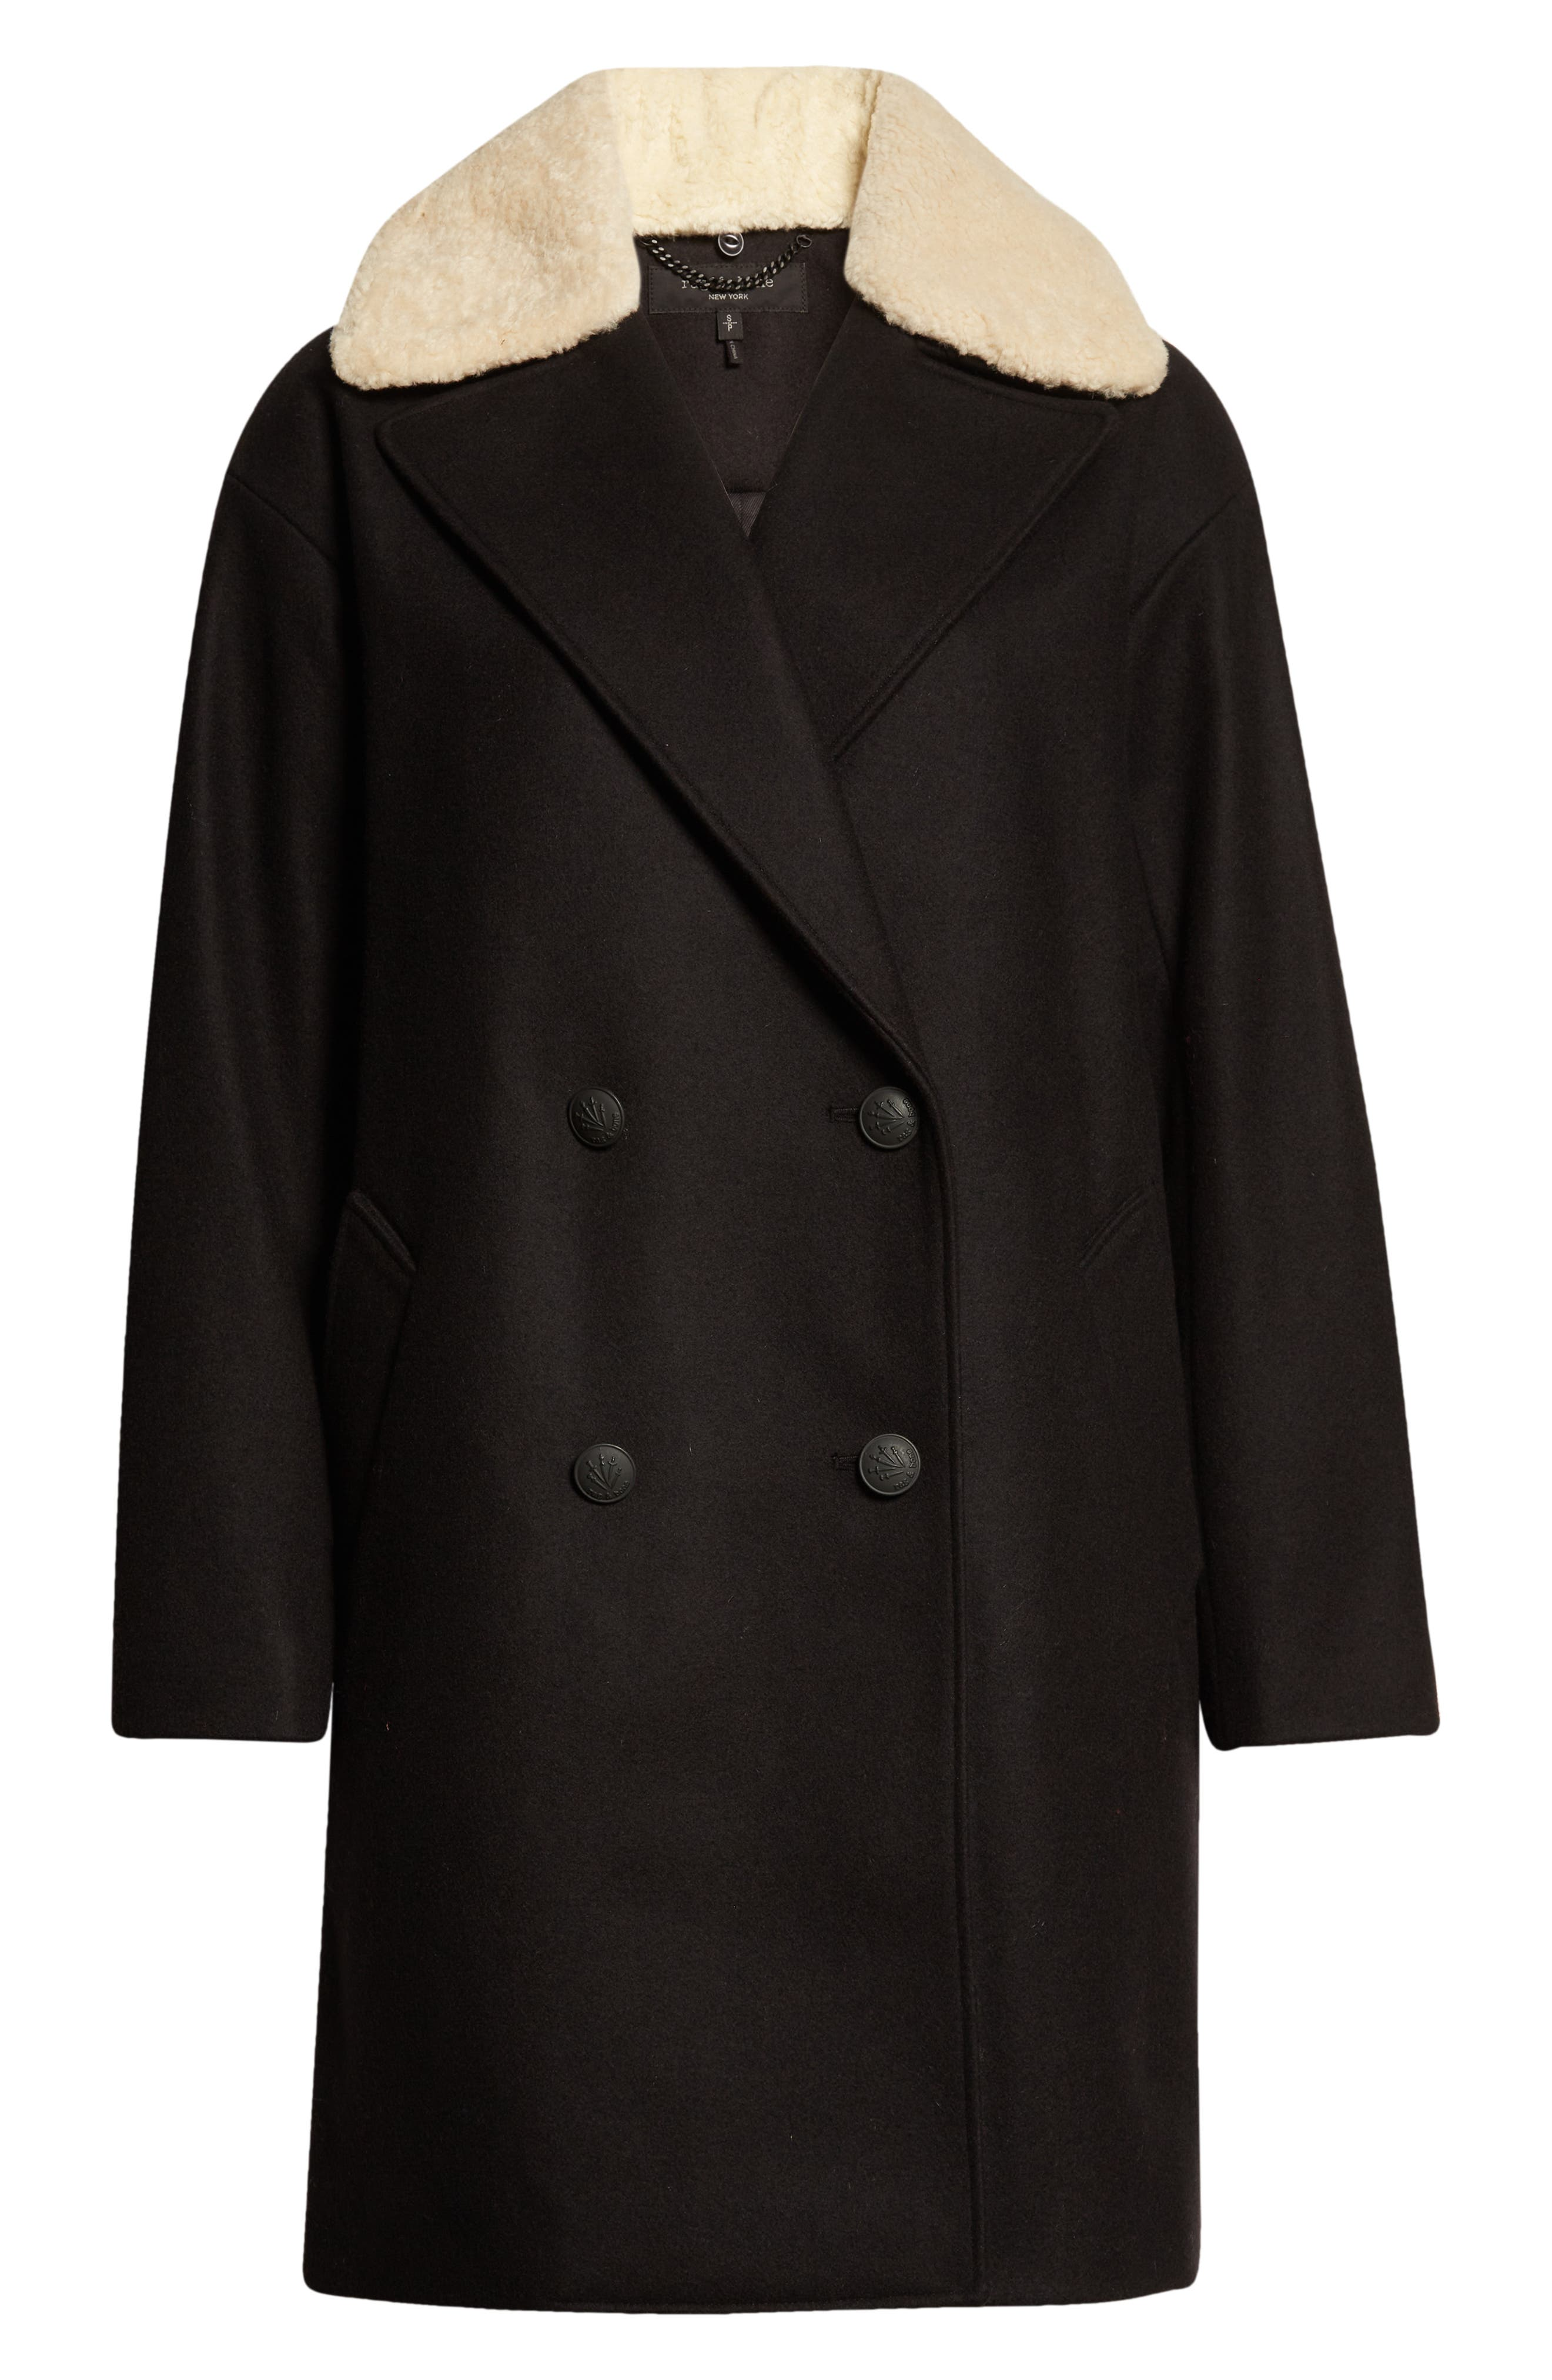 1920s Coats, Furs, Jackets and Capes History rag  bone Mina Cocoon Wool Blend Coat Size X-Small in Black at Nordstrom $1,095.00 AT vintagedancer.com